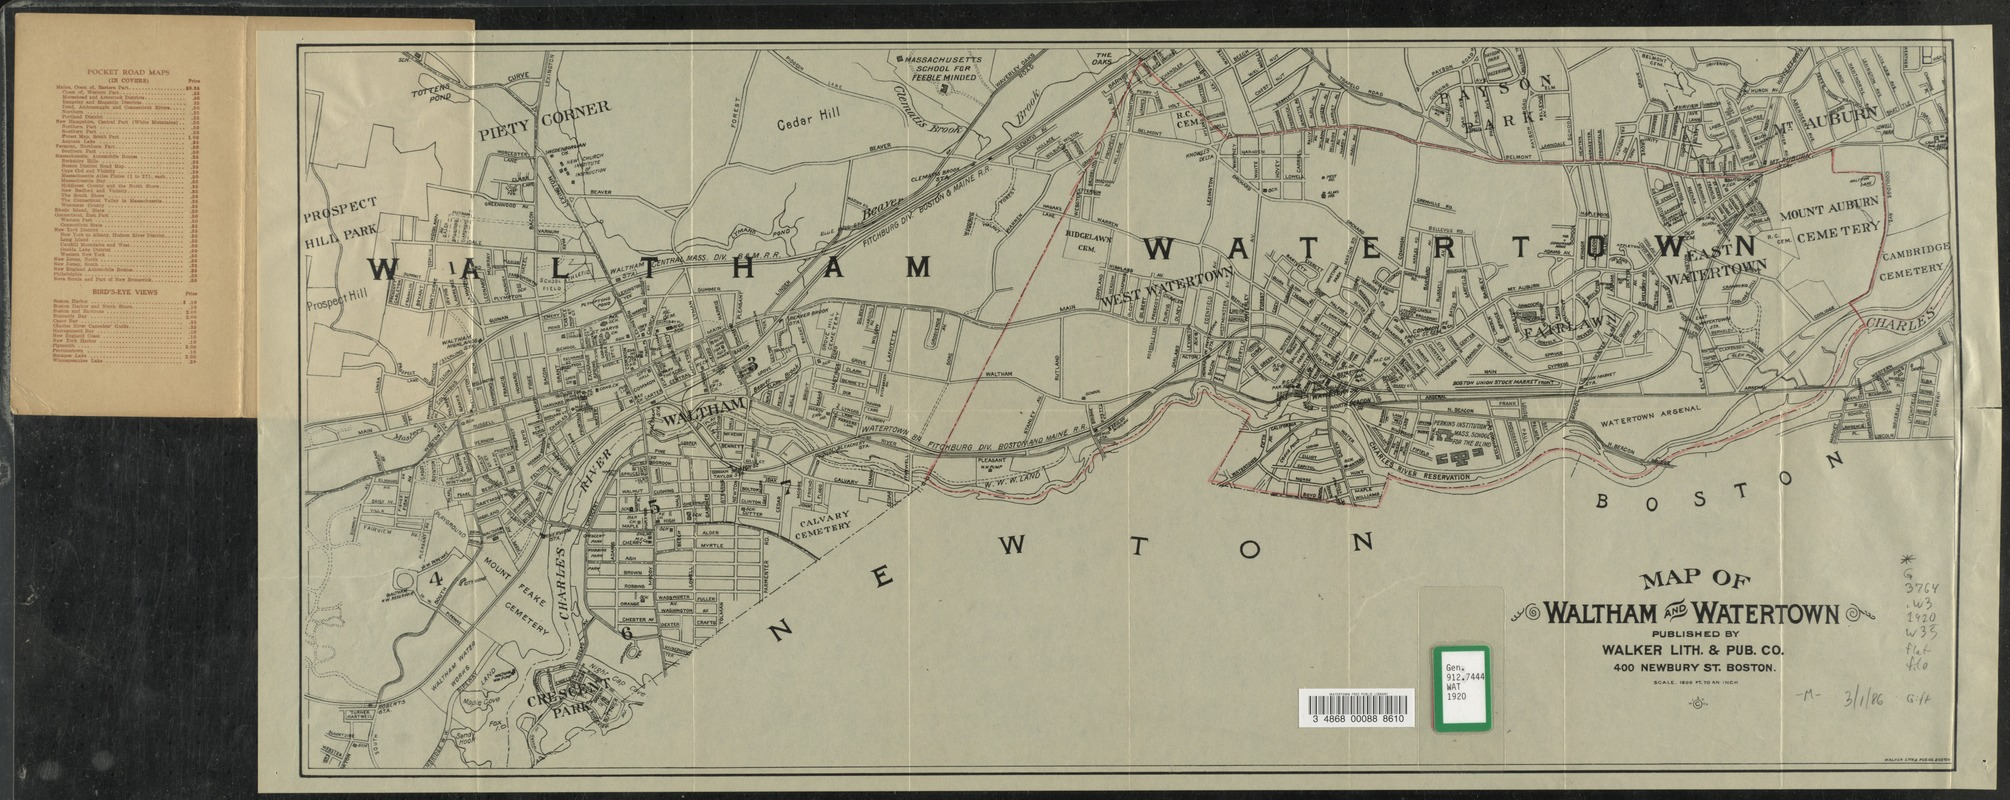 Map of Waltham and Watertown.